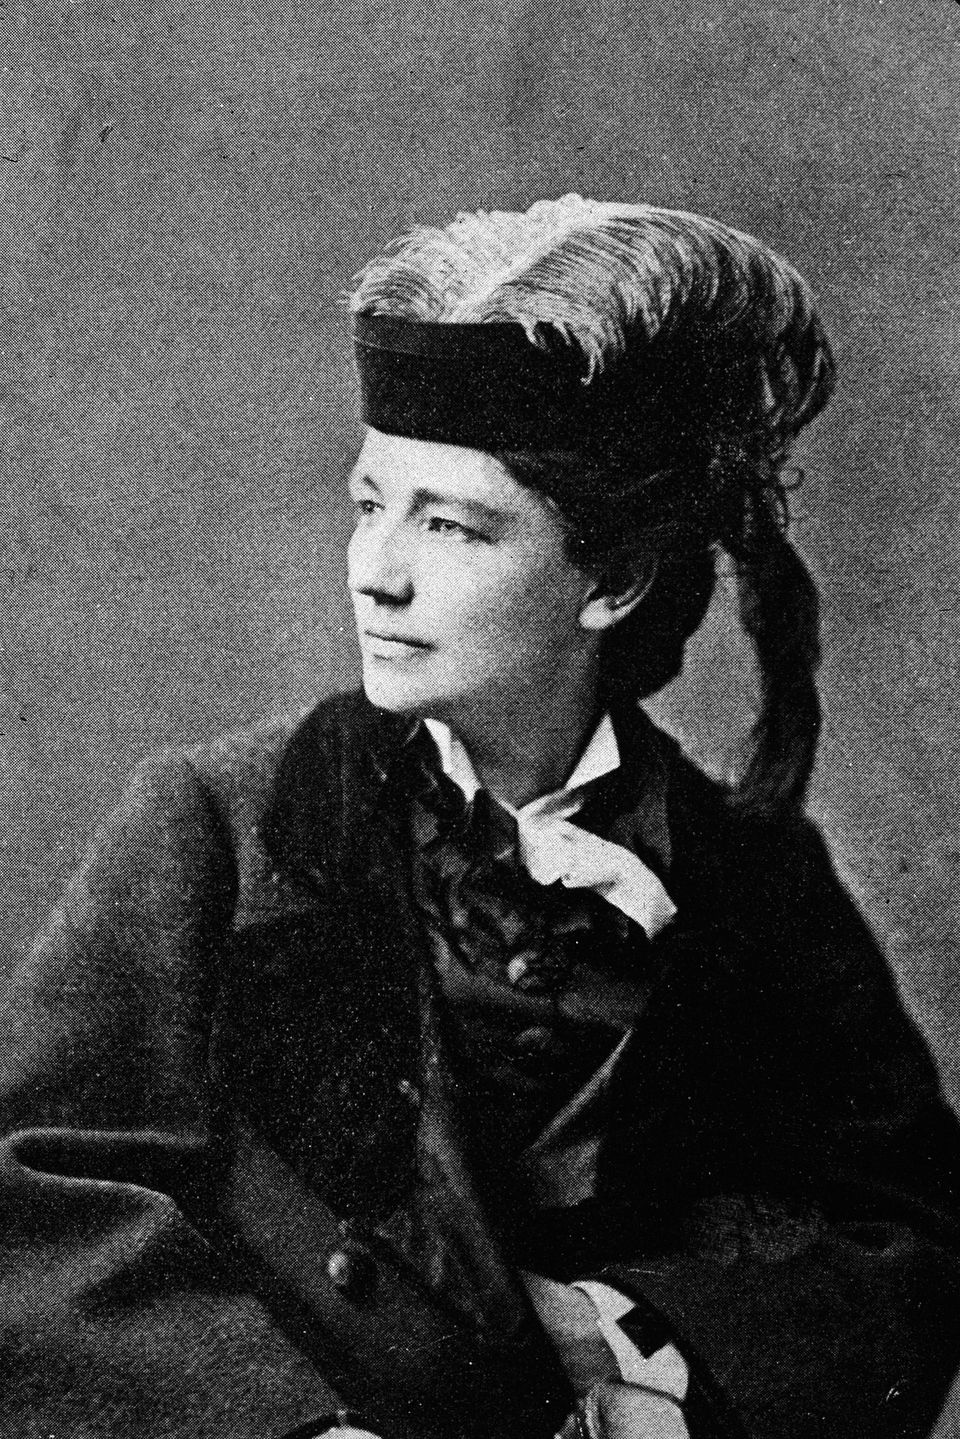 """<a href=""""http://www.politico.com/magazine/story/2015/04/victoria-woodhull-first-woman-presidential-candidate-116828"""" target="""""""